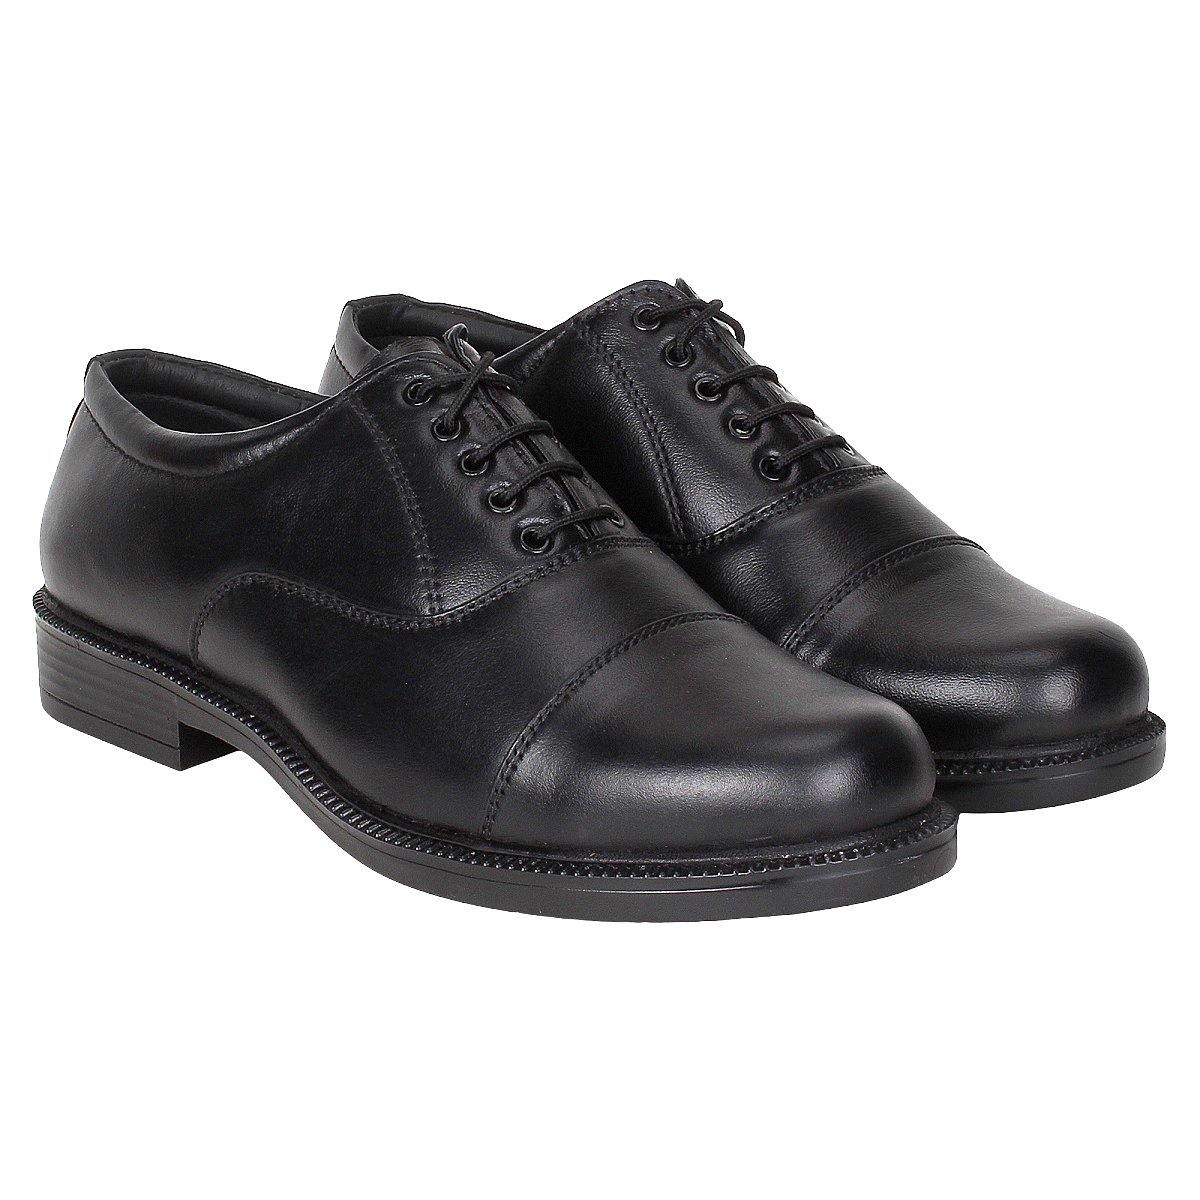 SeeandWear Police Shoes for Men